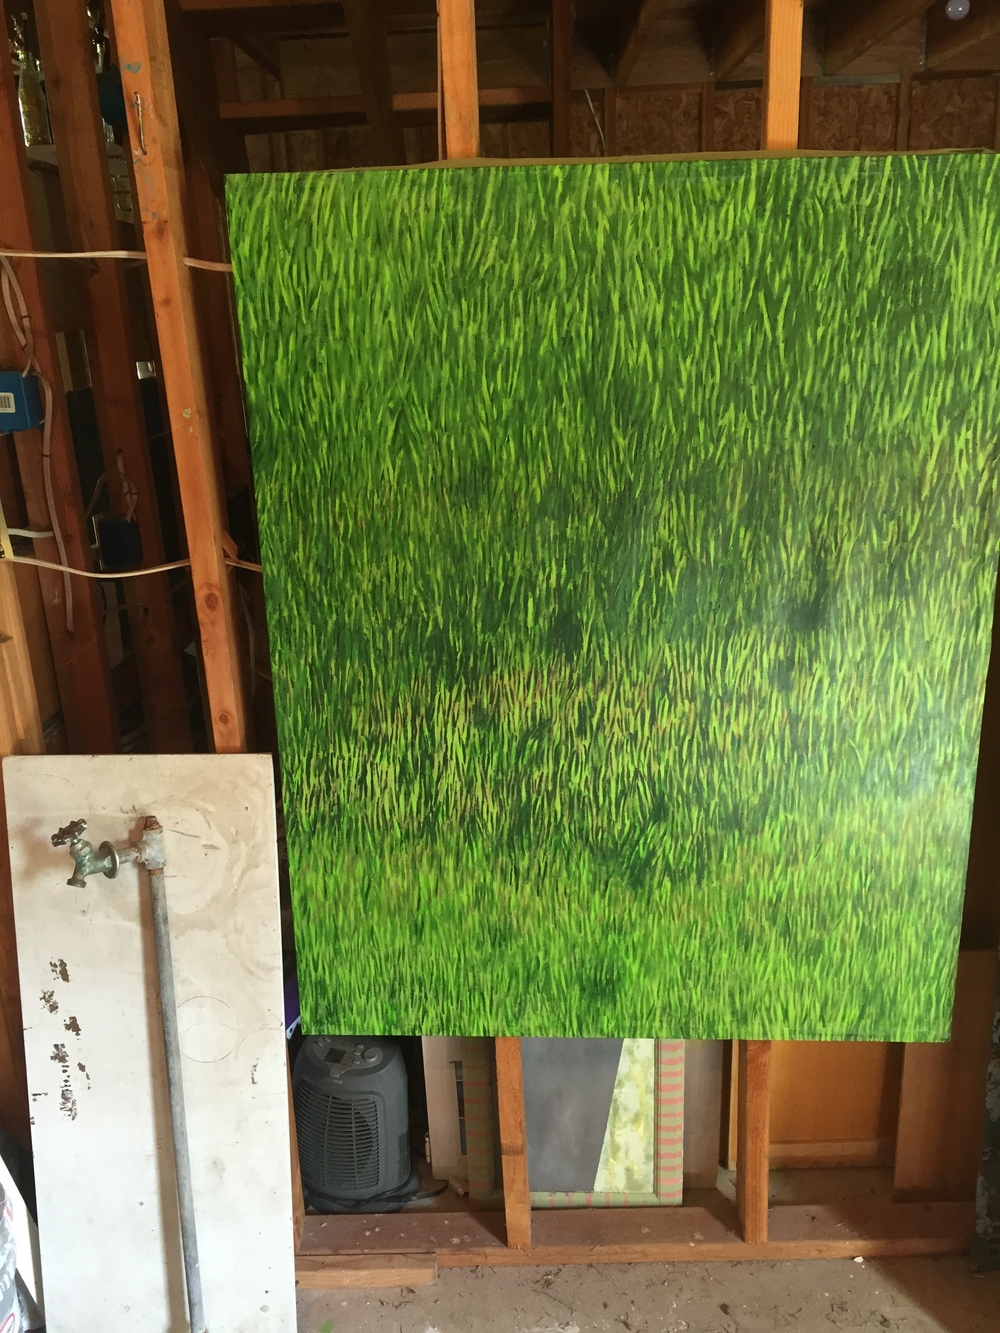 The two components of the grass piece in the works.